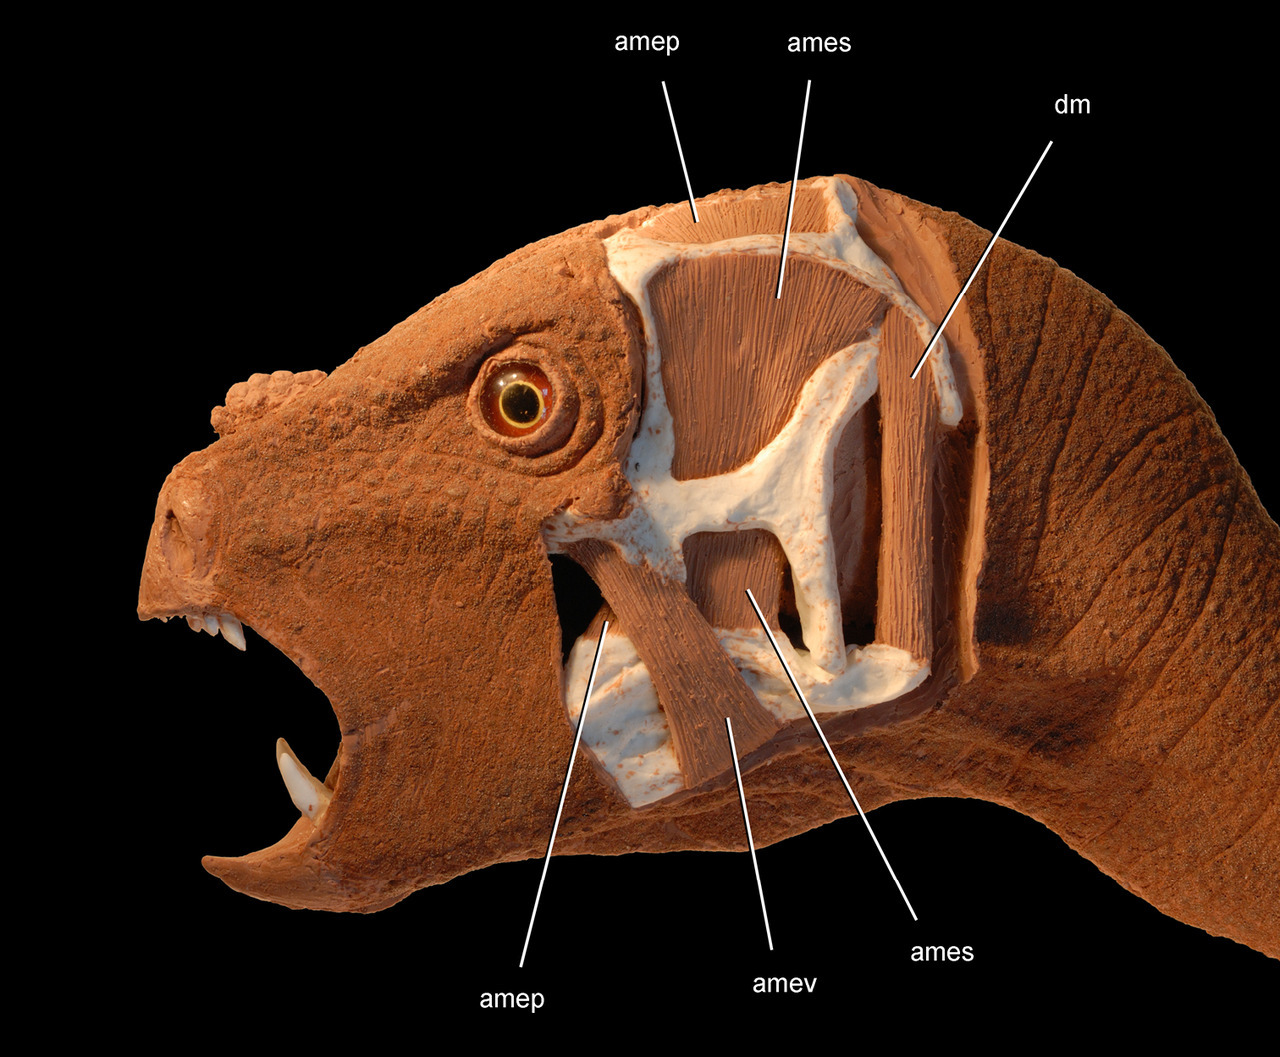 "dailymedical:  Dracula Dinosaur Newly Described, ""Would Be Nice Pet"" The newly discovered dinosaur is a herbivorous species with a parrot-like beak and, strangely, sharp canines sitting in front of tall teeth meant to cut up plants. A strange and tiny dinosaur has just been documented for the first time in scientific literature. Almost as strange as its physical appearance, was its journey to being described. Fossils of the family of this dinosaur, called Pegomastax africanus or ""thick jaw from Africa,"" have appeared everywhere from China to England. It was first discovered 50 years ago in South Africa but was soon scooped up by Harvard University. The fossils were never described and then, when it was shipped back to Cape Town's South African Museum, the true nature of the fossils remained undiscovered. Read more  #iVantToSuckYourBruhathkayosaurus"